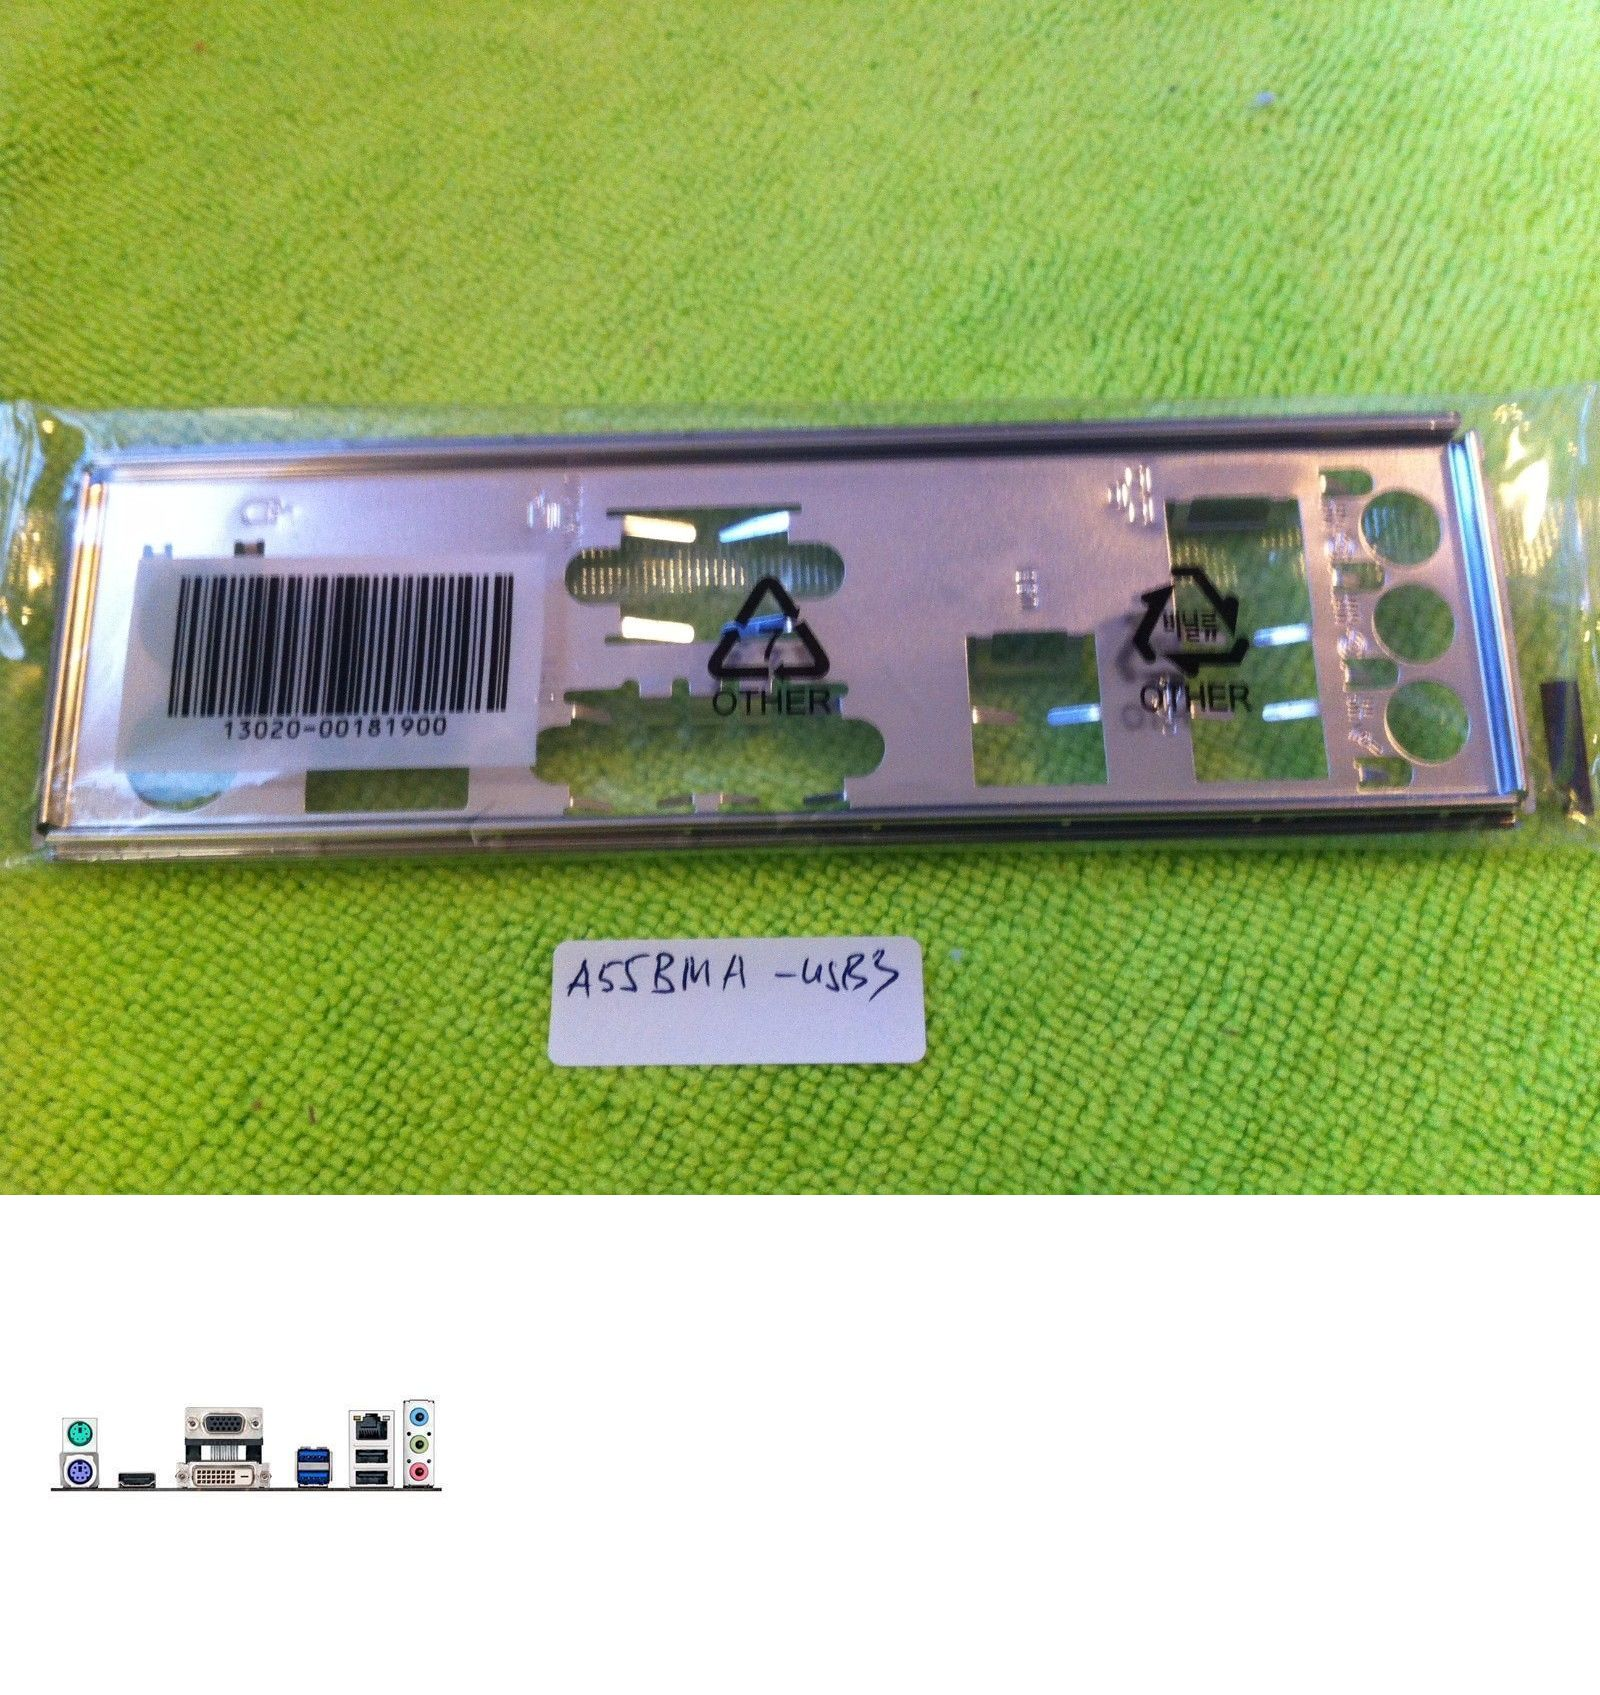 Motherboard Backplates 170080: Asus Io Shield For A55bm A